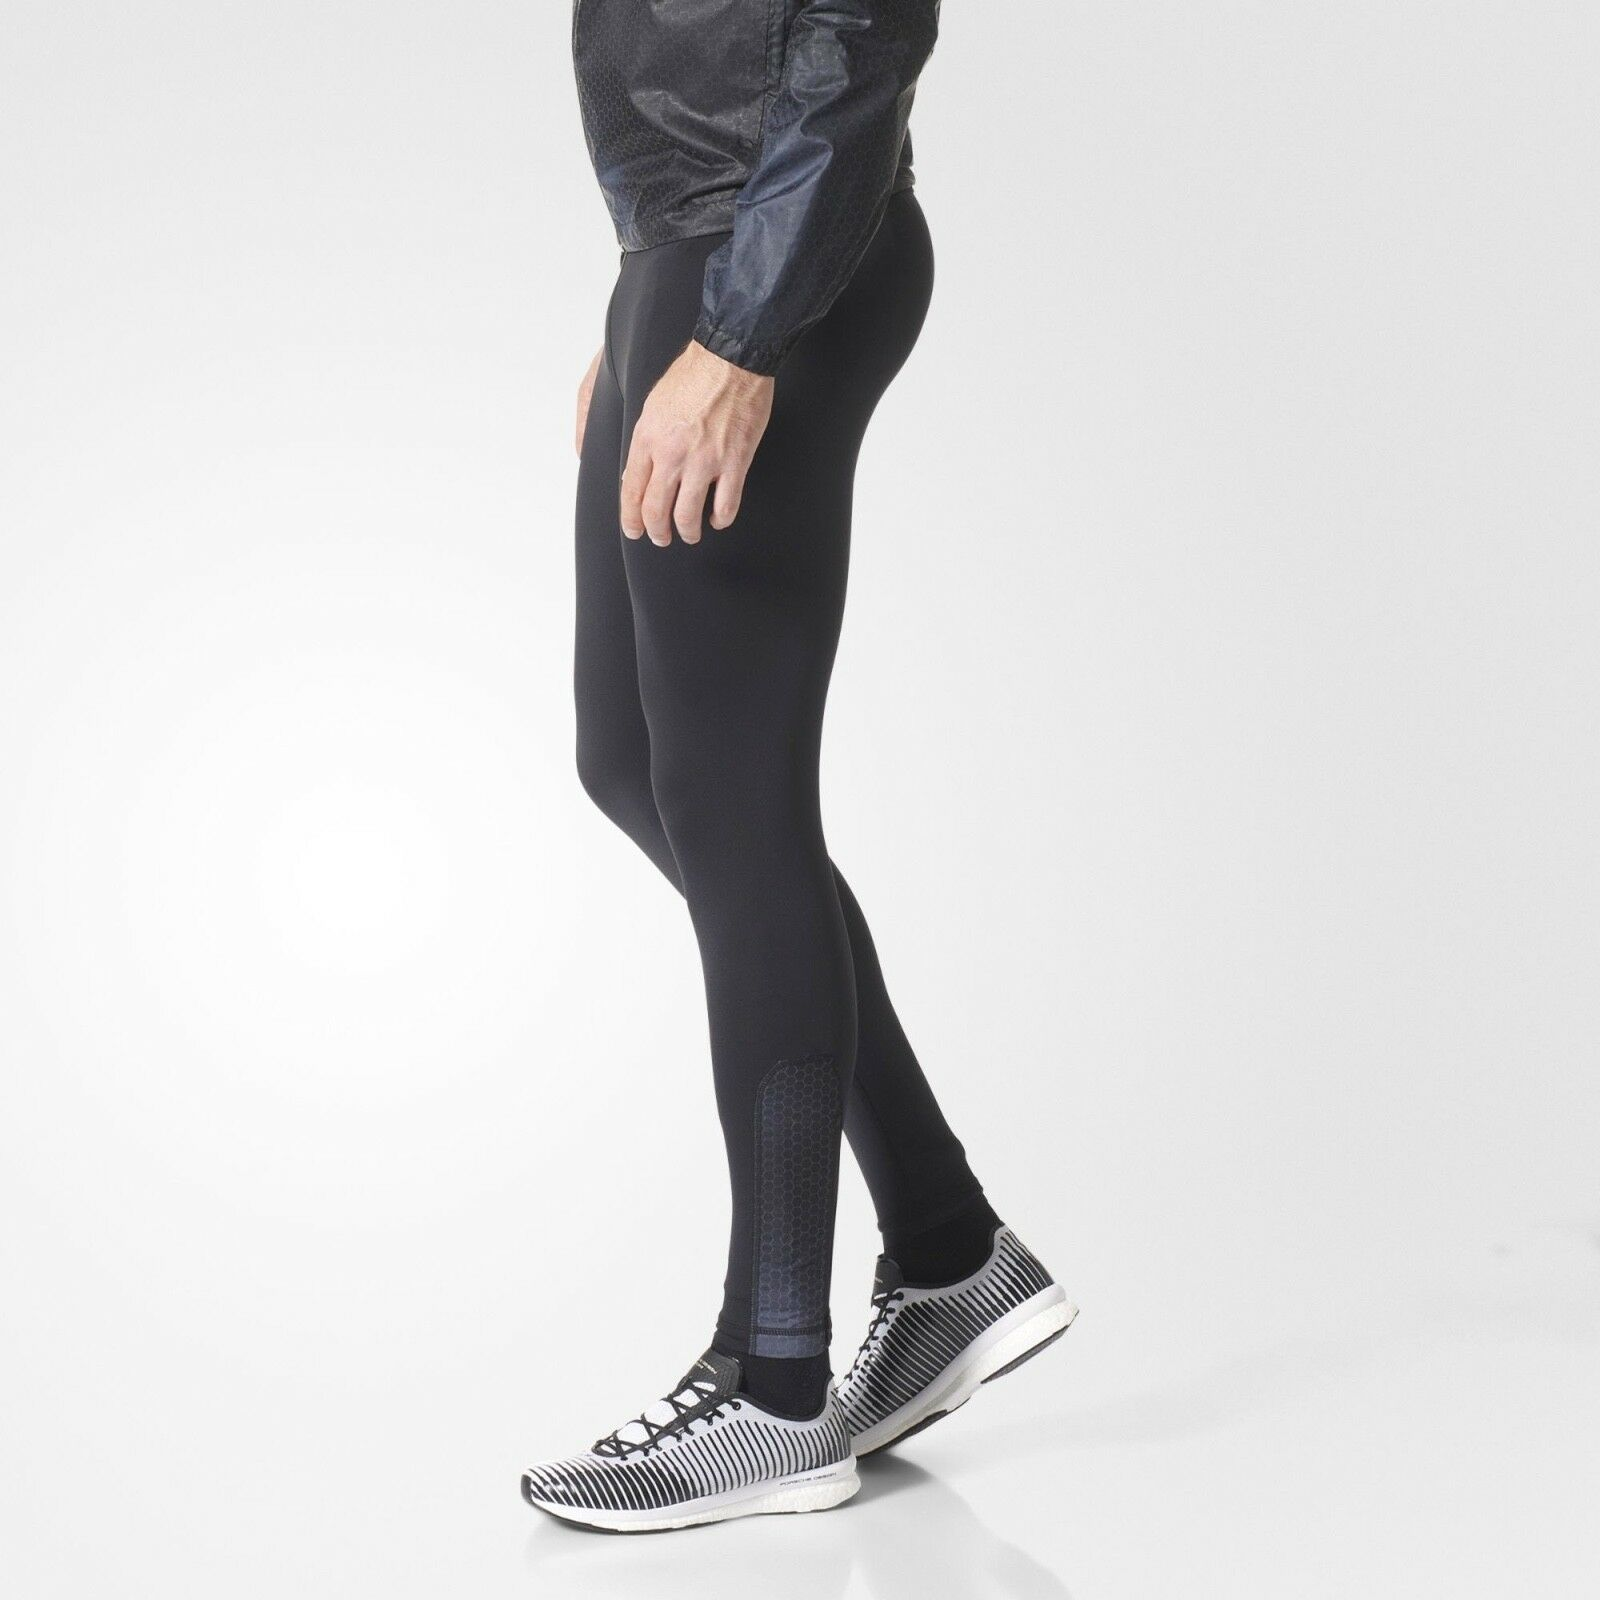 Porsche Design Tight 7  8 Long L New+Tags Logo Joggers Run Bike Leggings Pants  quality first consumers first